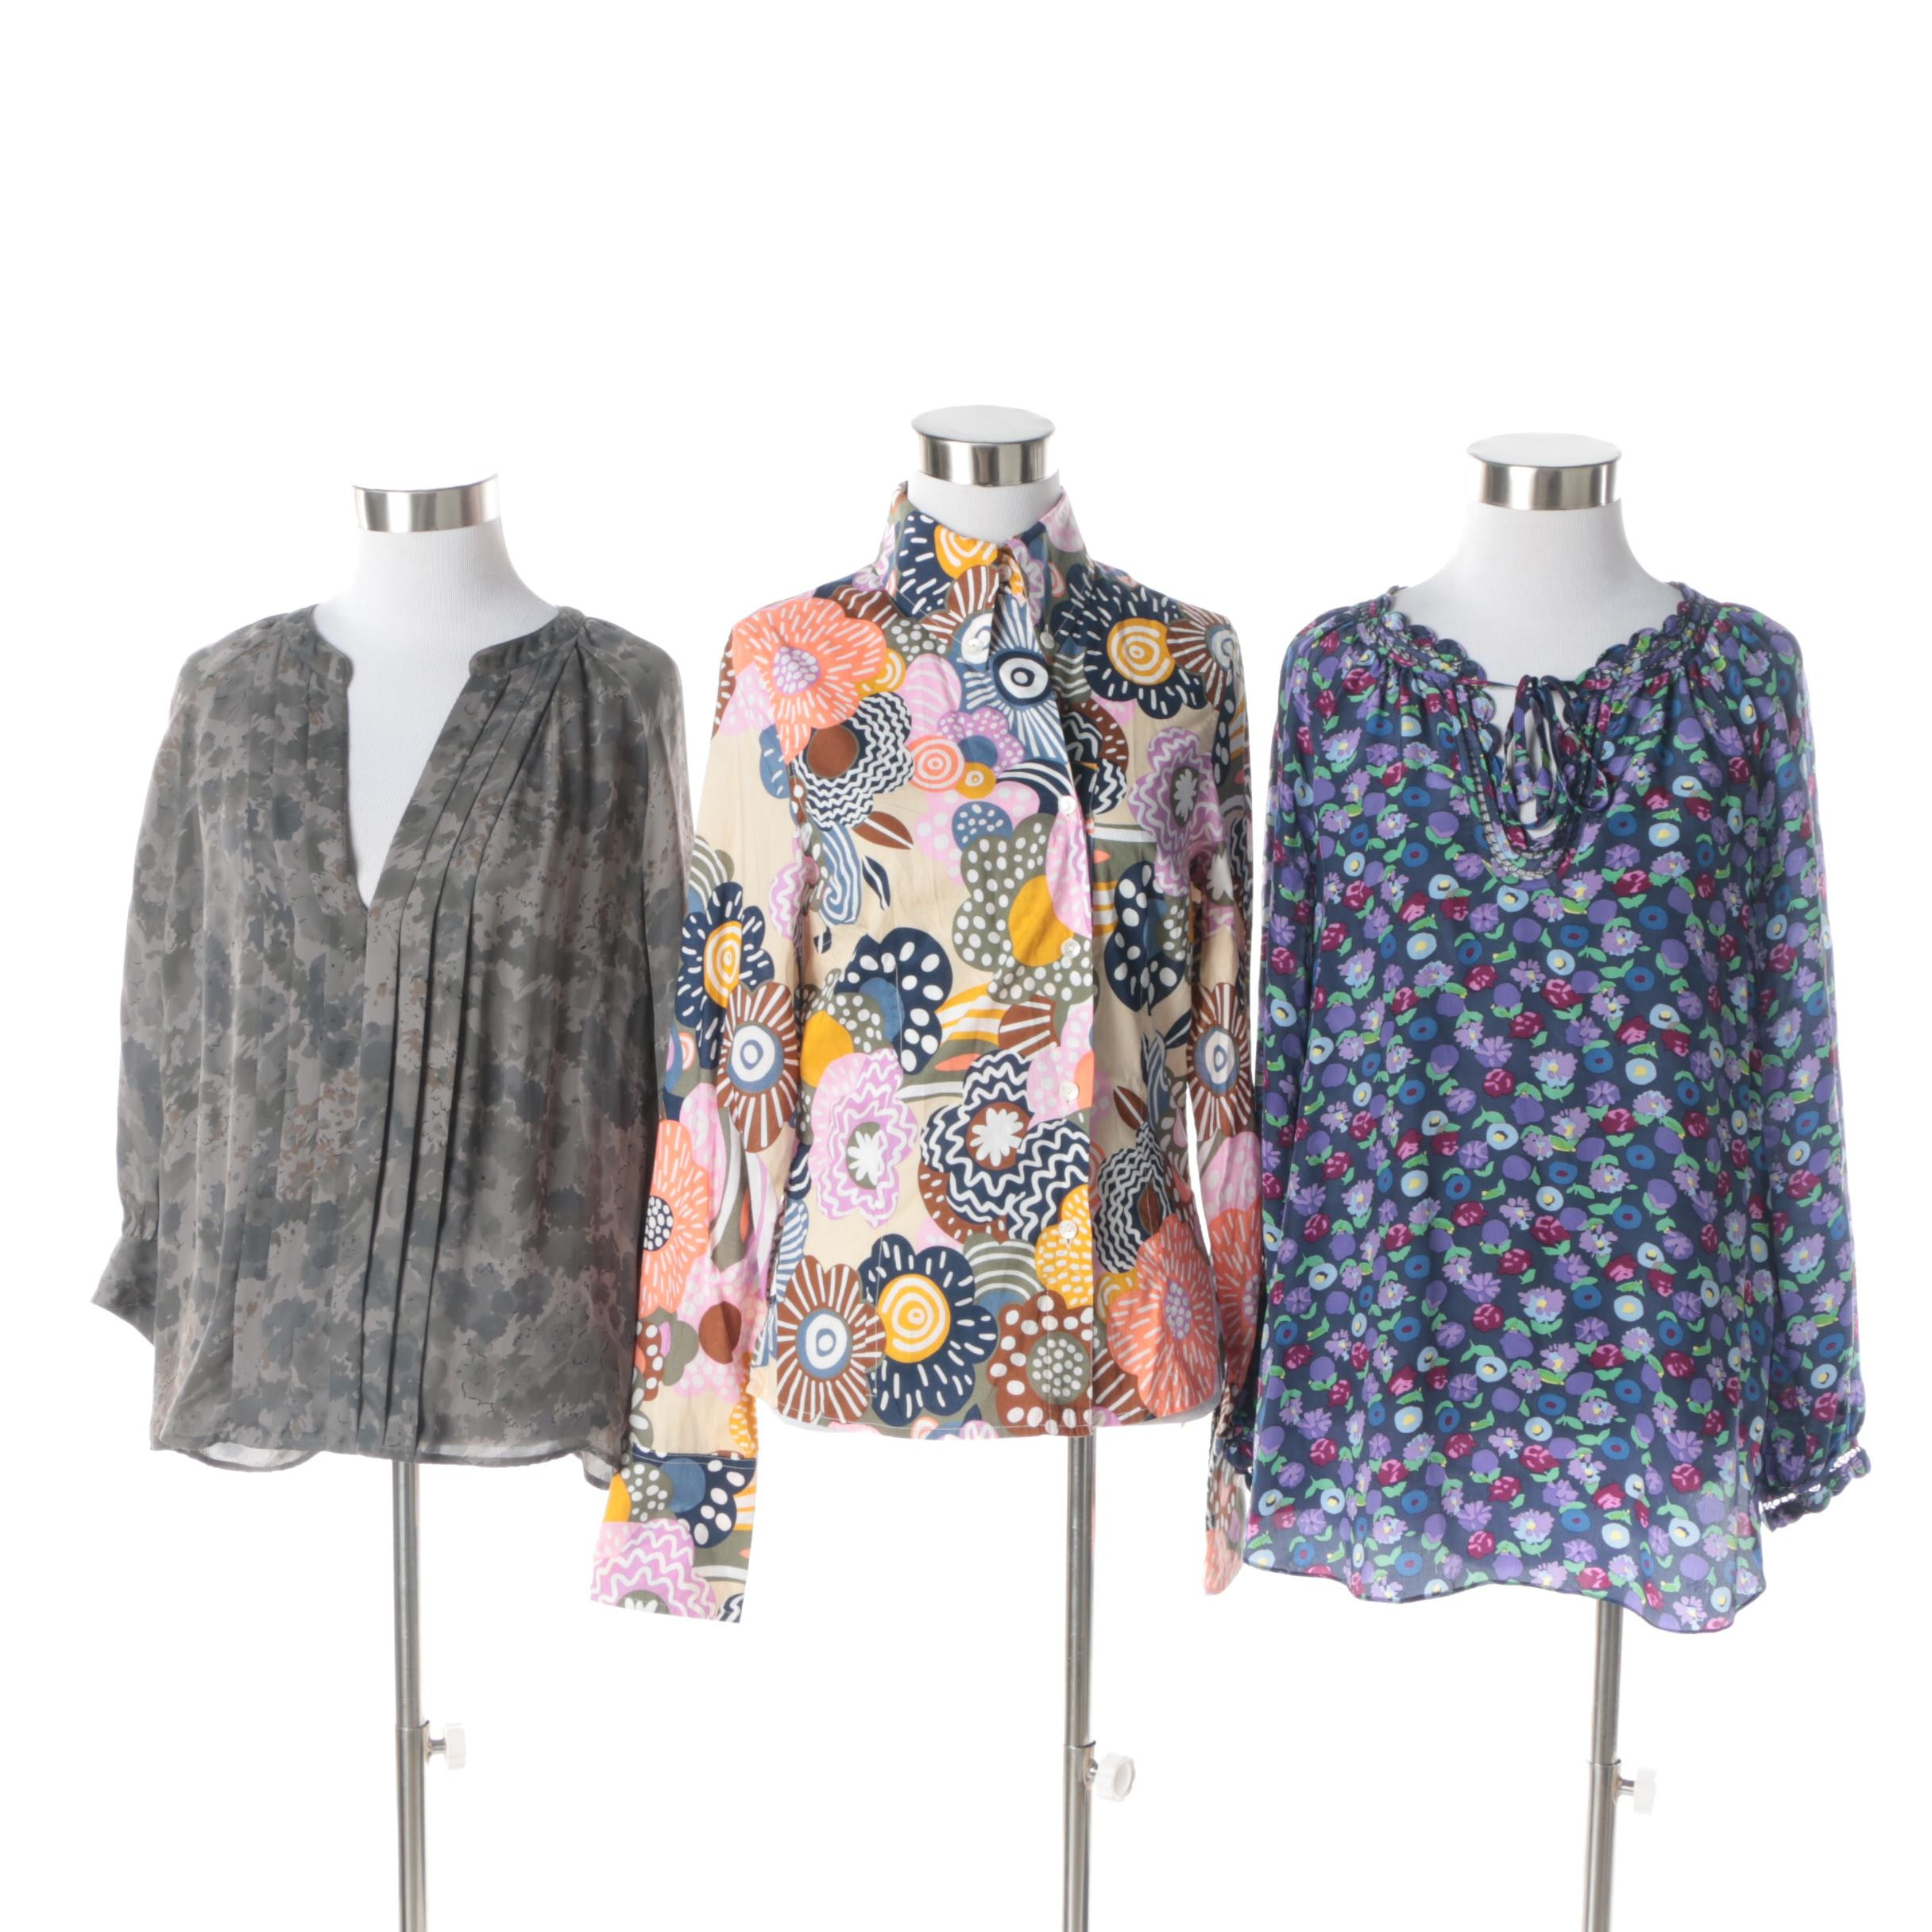 Women's Rebecca Taylor, Joie and Oilily Patterned Blouses